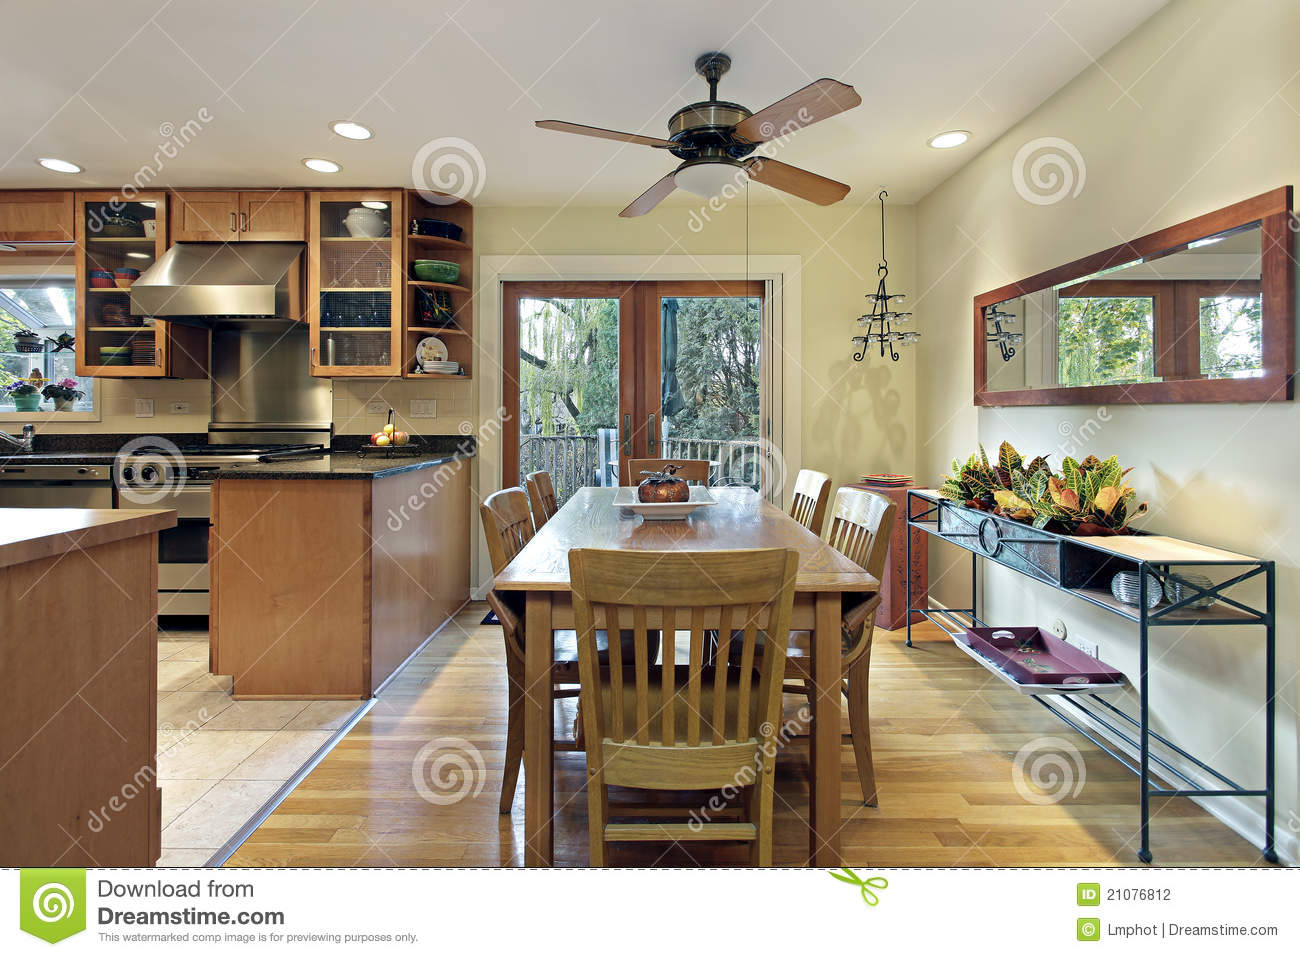 Eating Area Of Kitchen Stock Photography  Image 21076812 -> Funkcjonalna Kuchnia Z Salonem